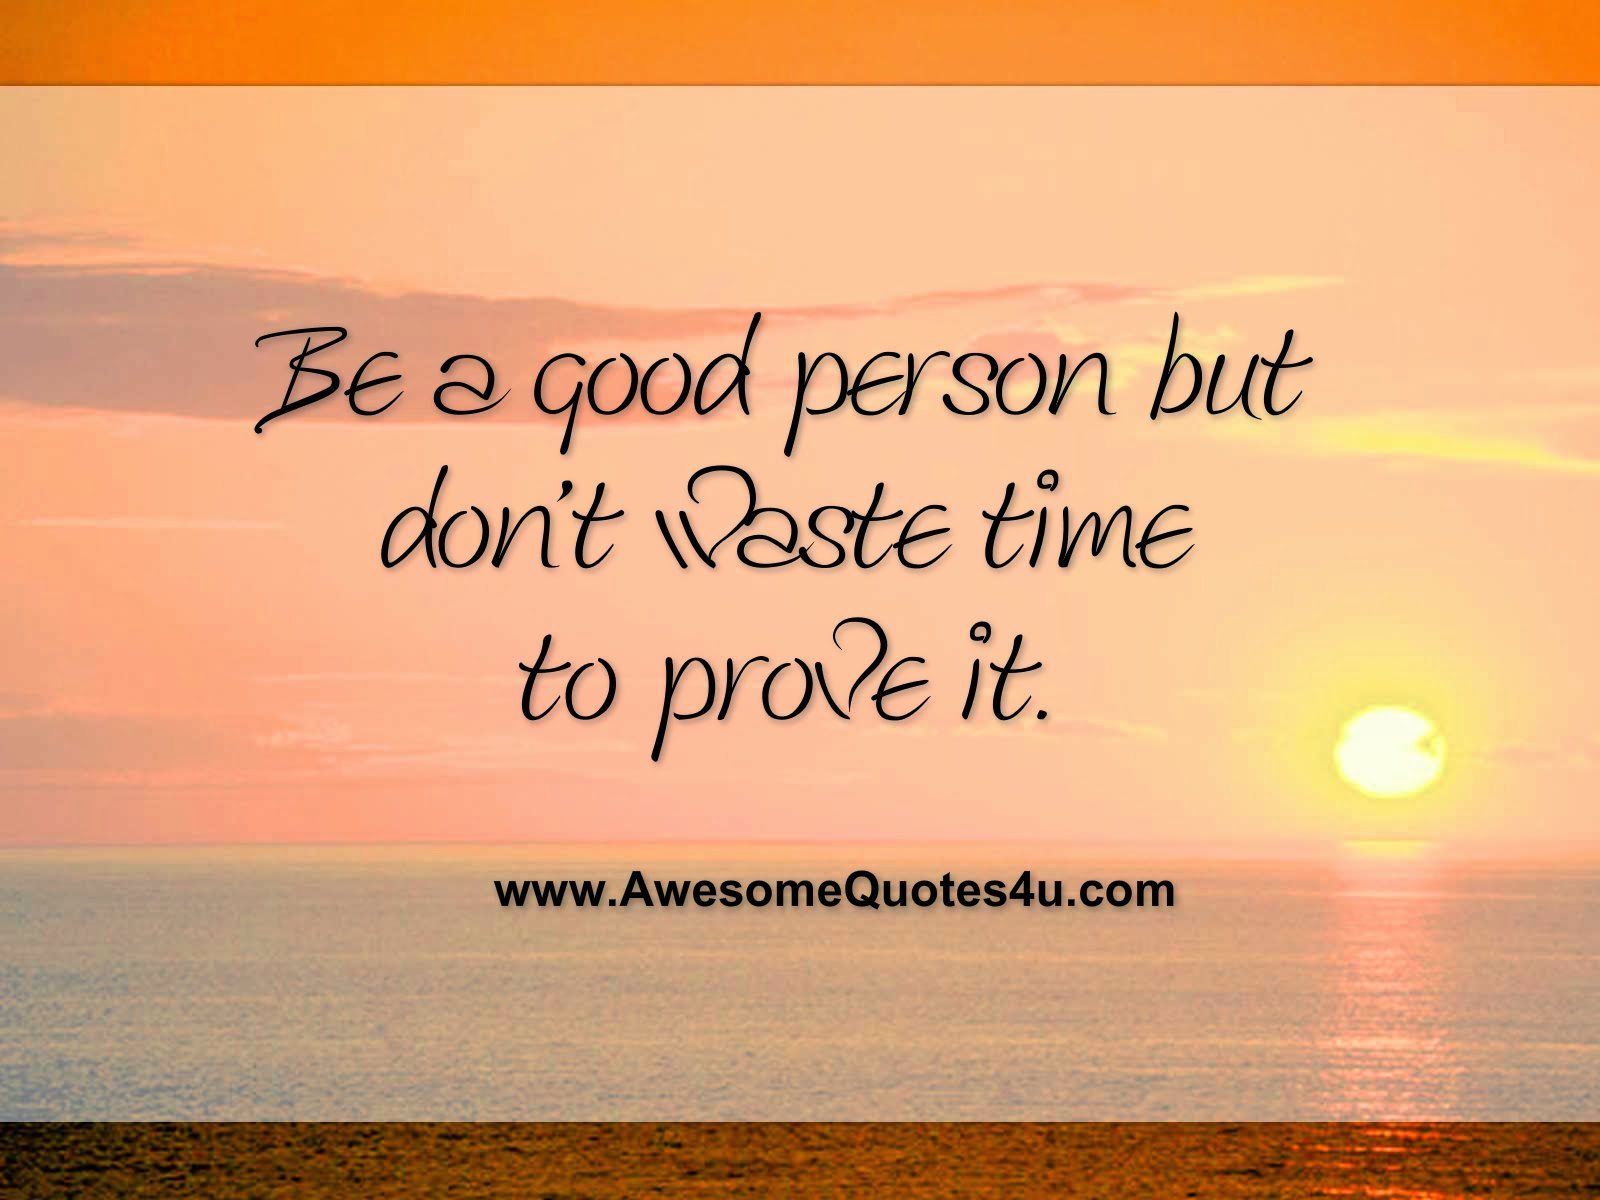 I Am A Good Person Quotes: Awesome Quotes: October 2013